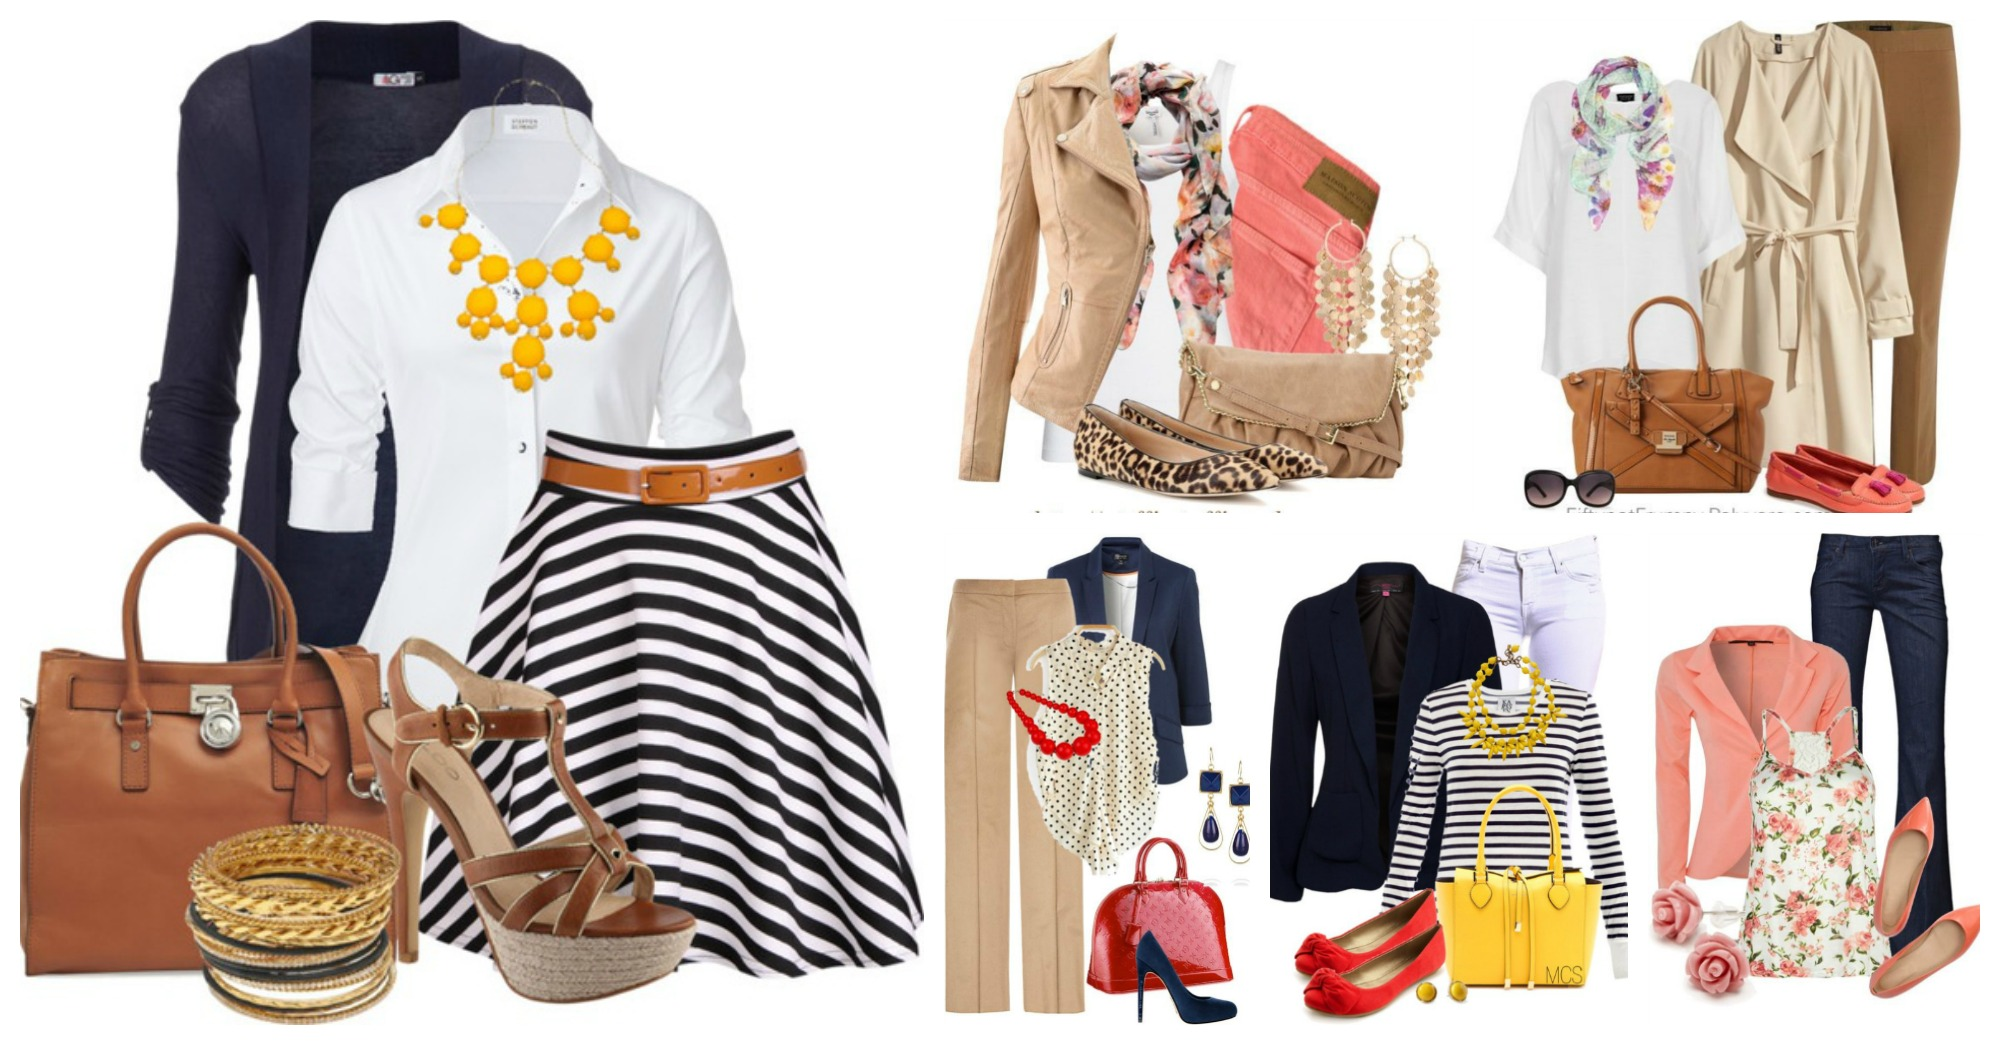 Stylish Early Spring Polyvore Outfits That Will Amaze You